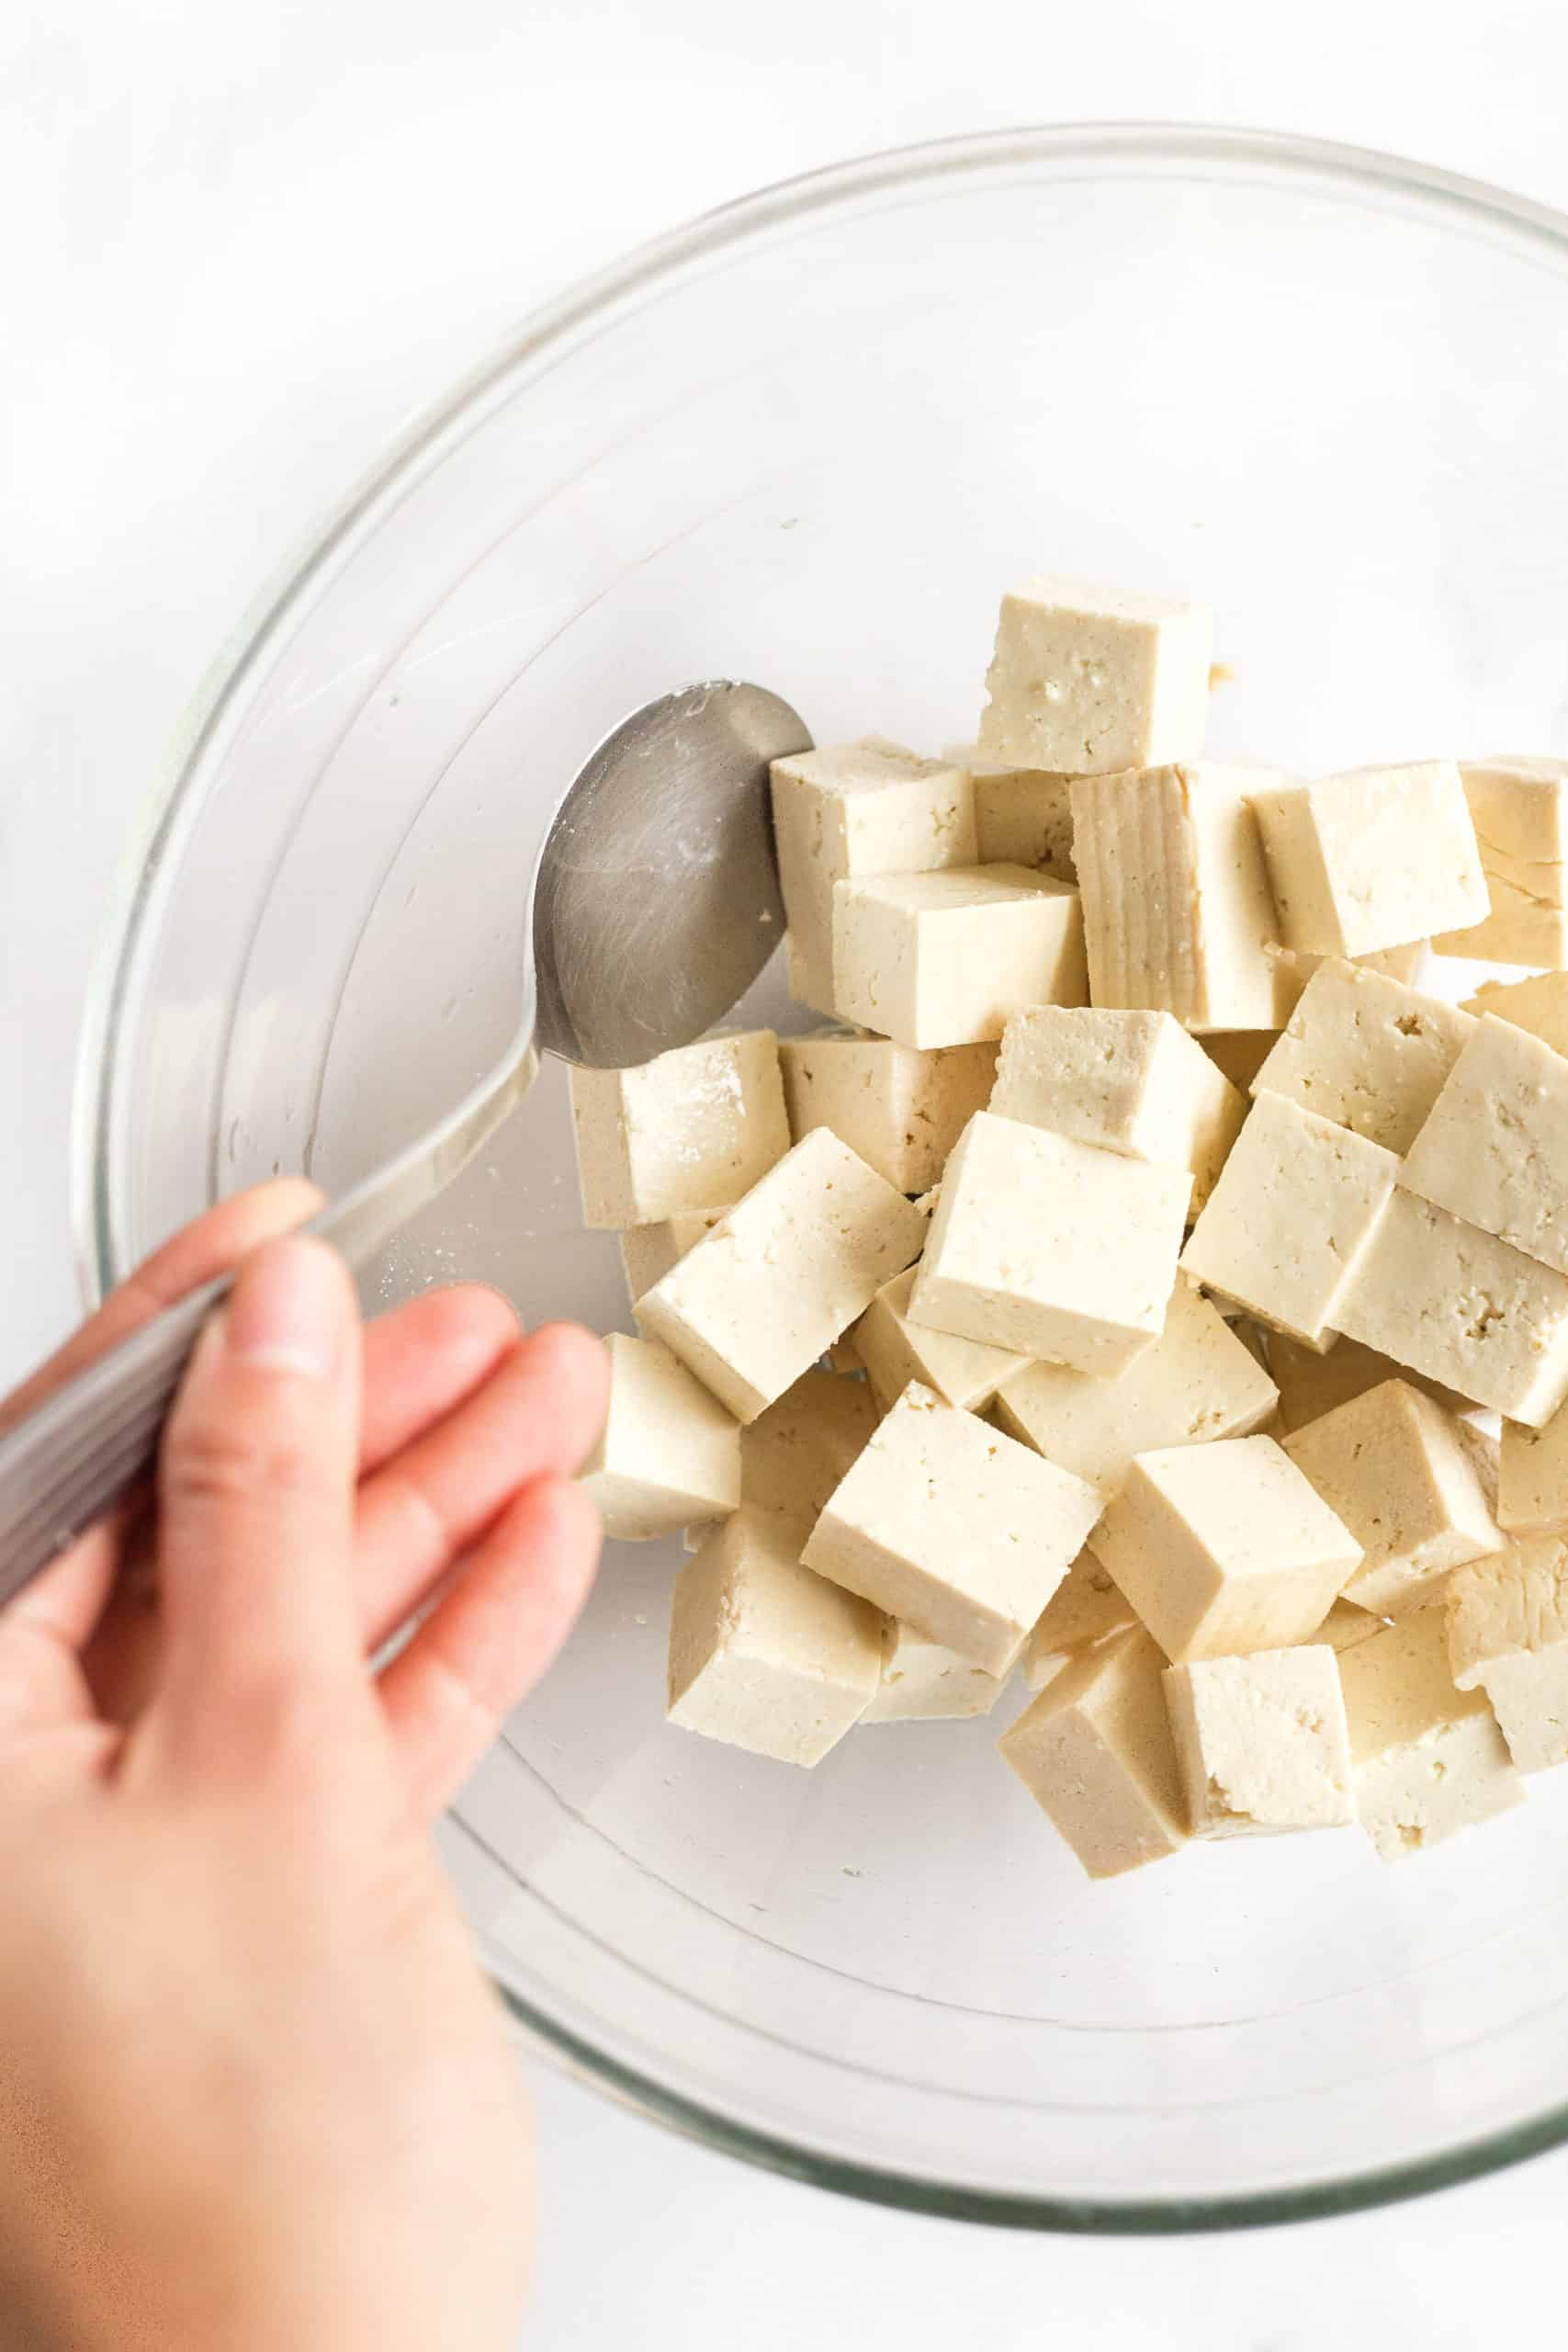 Hand using a spoon to toss cubed tofu with oil in a glass mixing bowl.